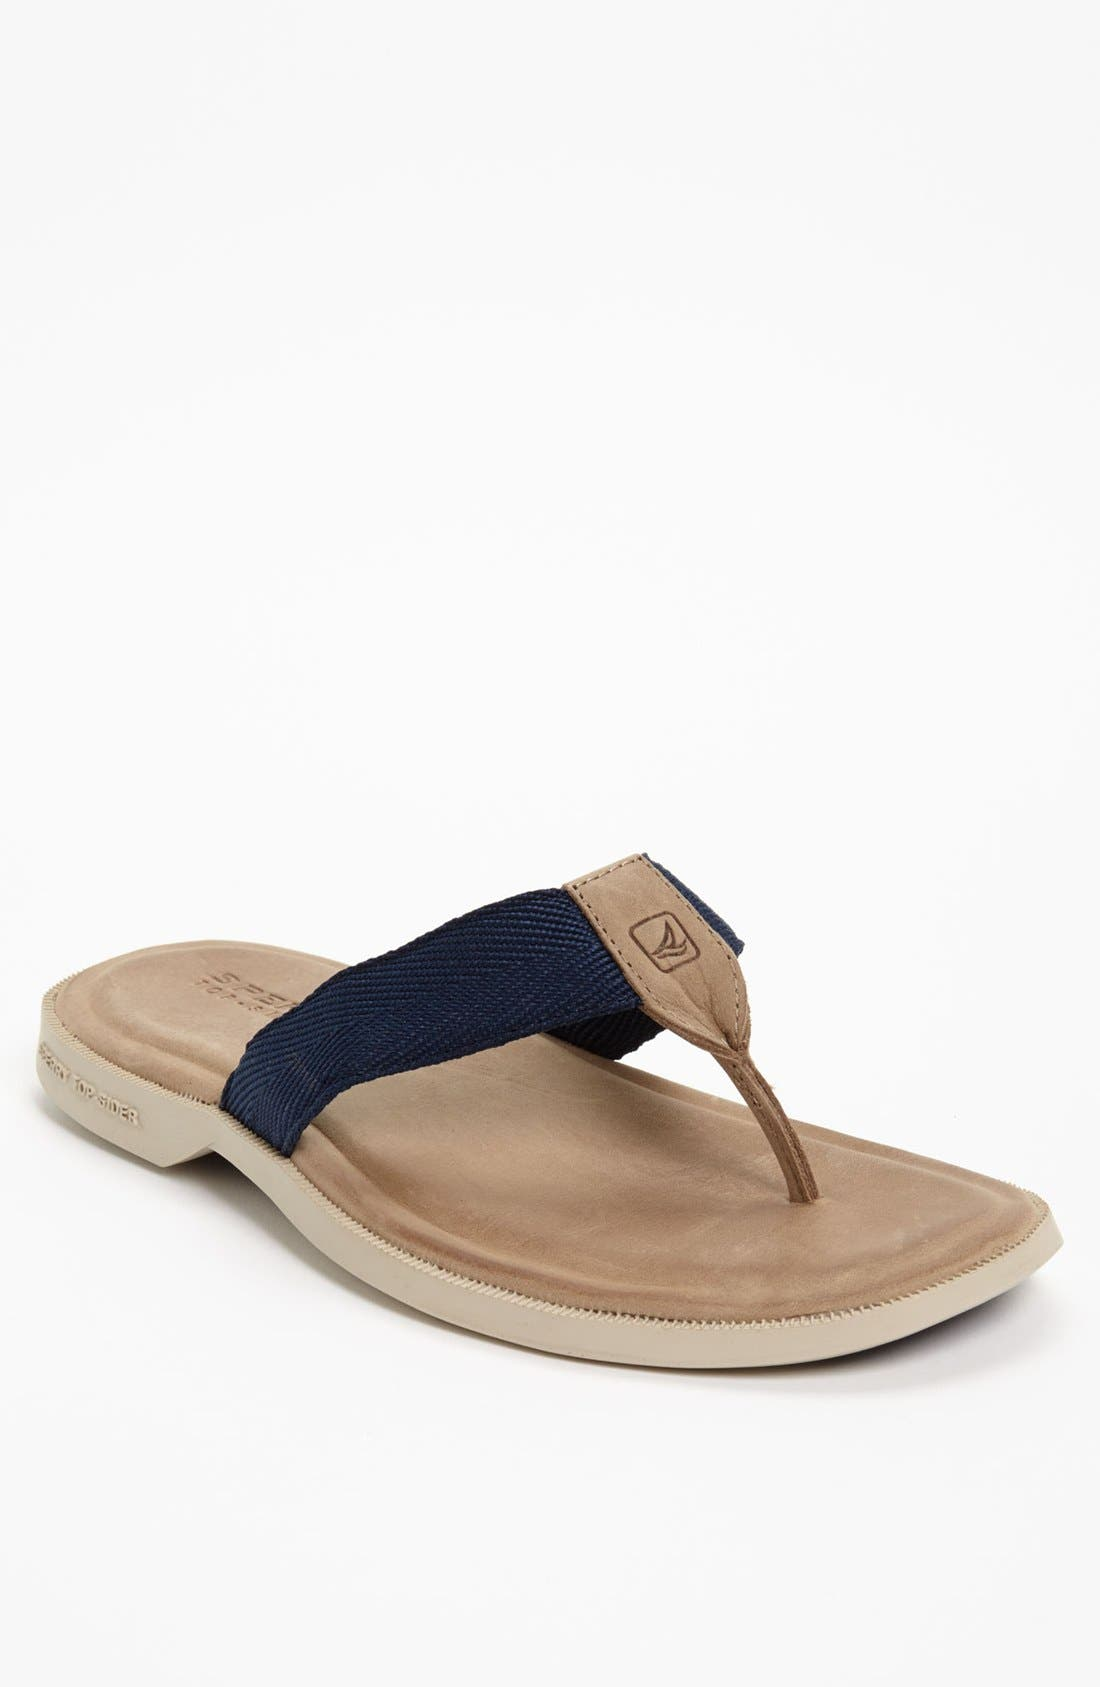 Main Image - Sperry Top-Sider® 'Harrison' Flip Flop (Men)